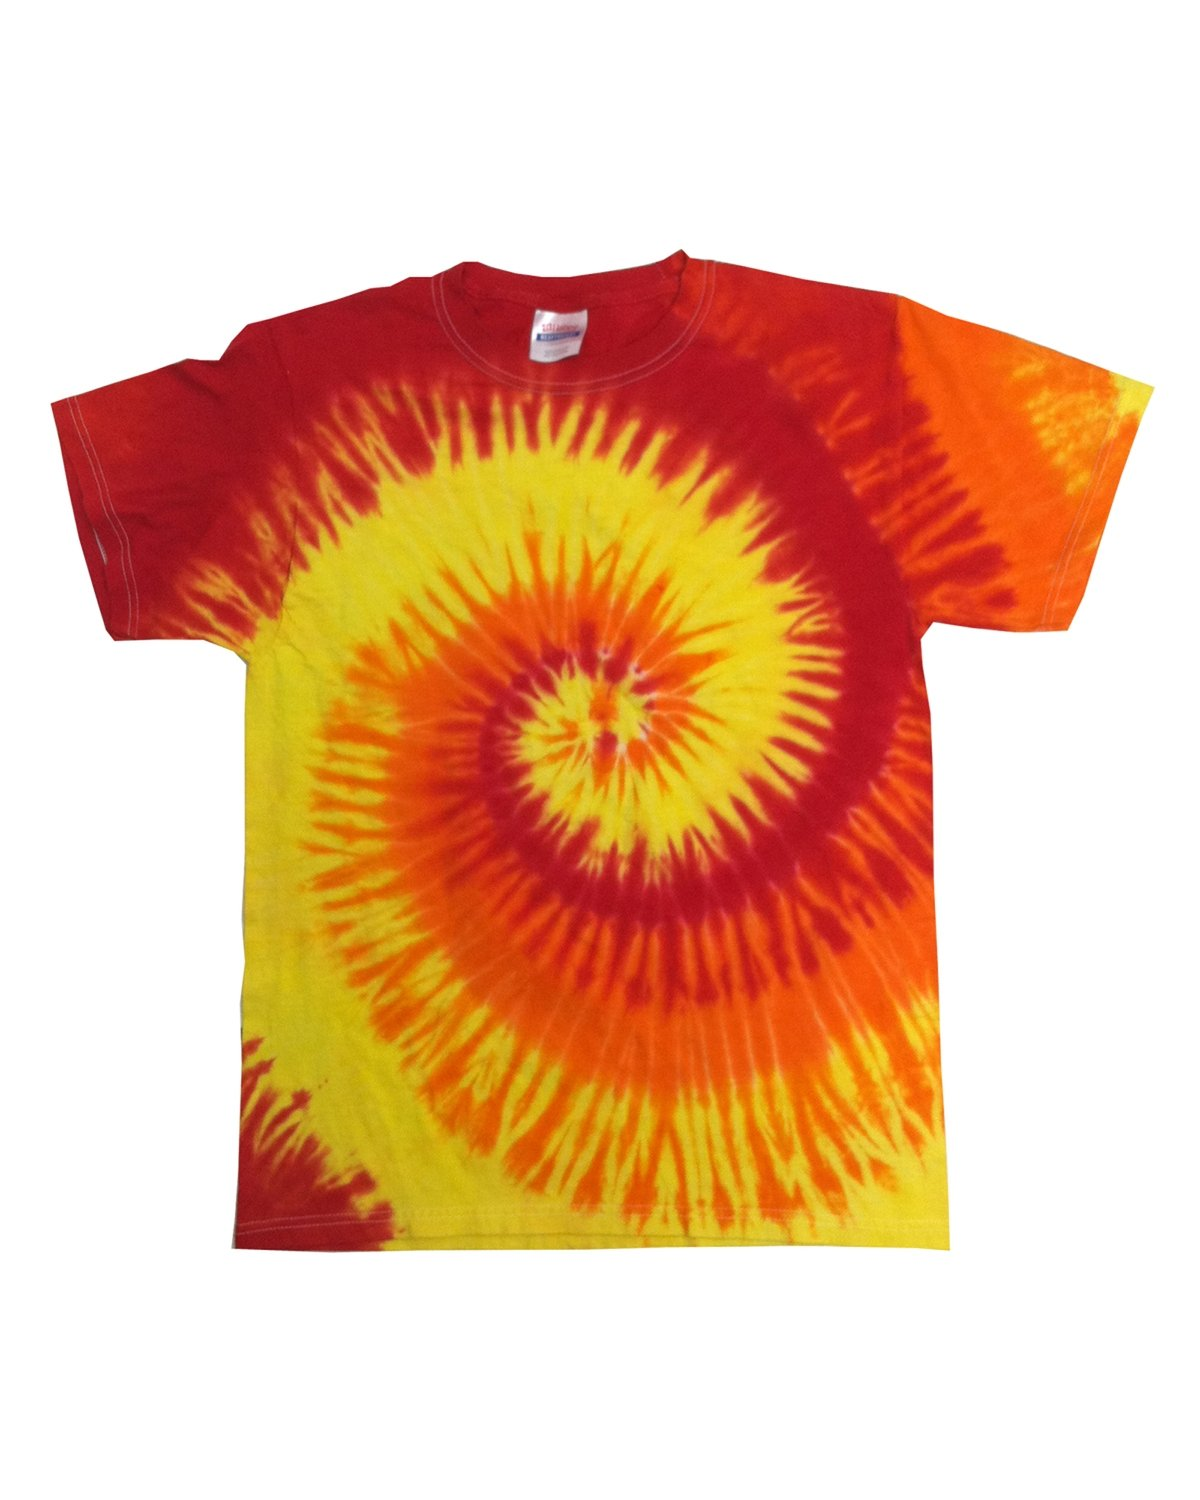 Tie-Dye Adult 5.4 oz., 100% Cotton T-Shirt BLAZE